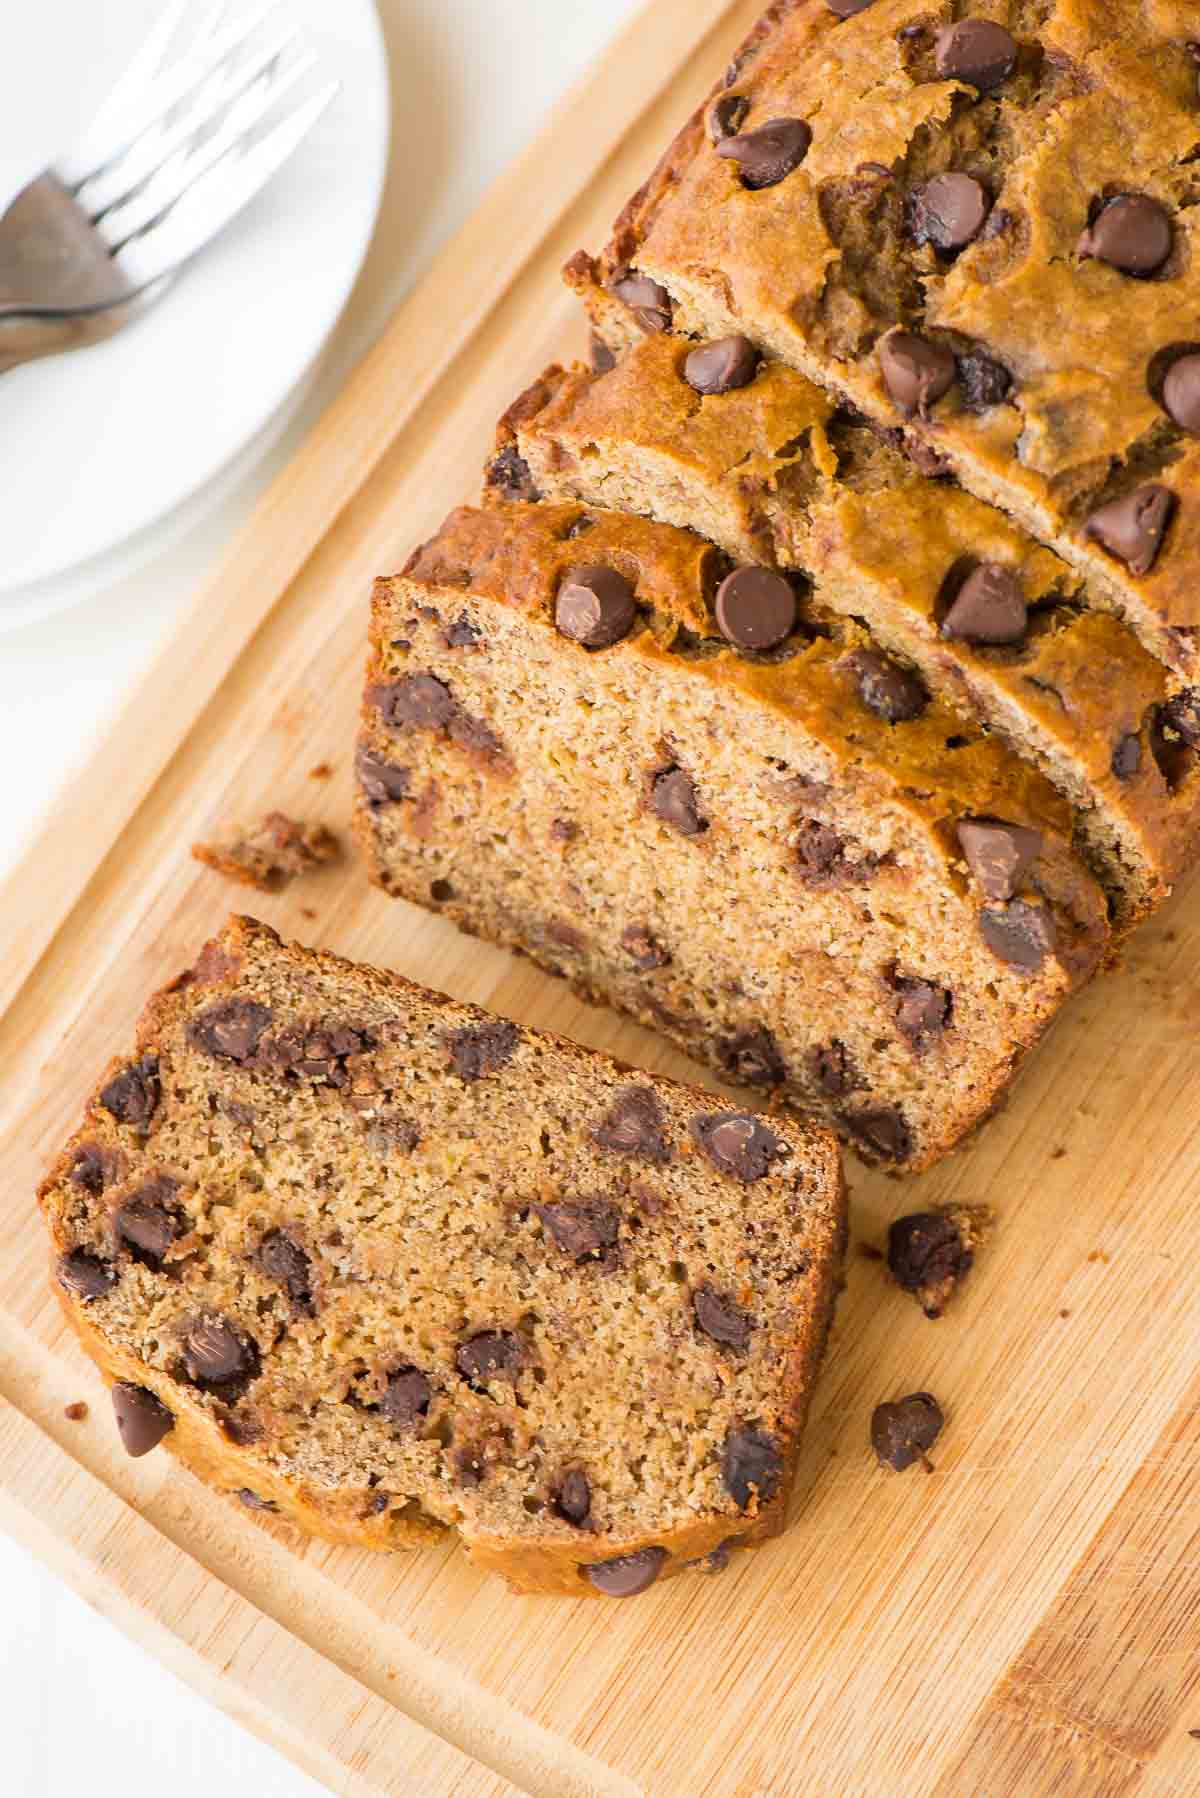 Healthy Banana Bread Recipes  Healthy Banana Bread Recipe with Chocolate Chips